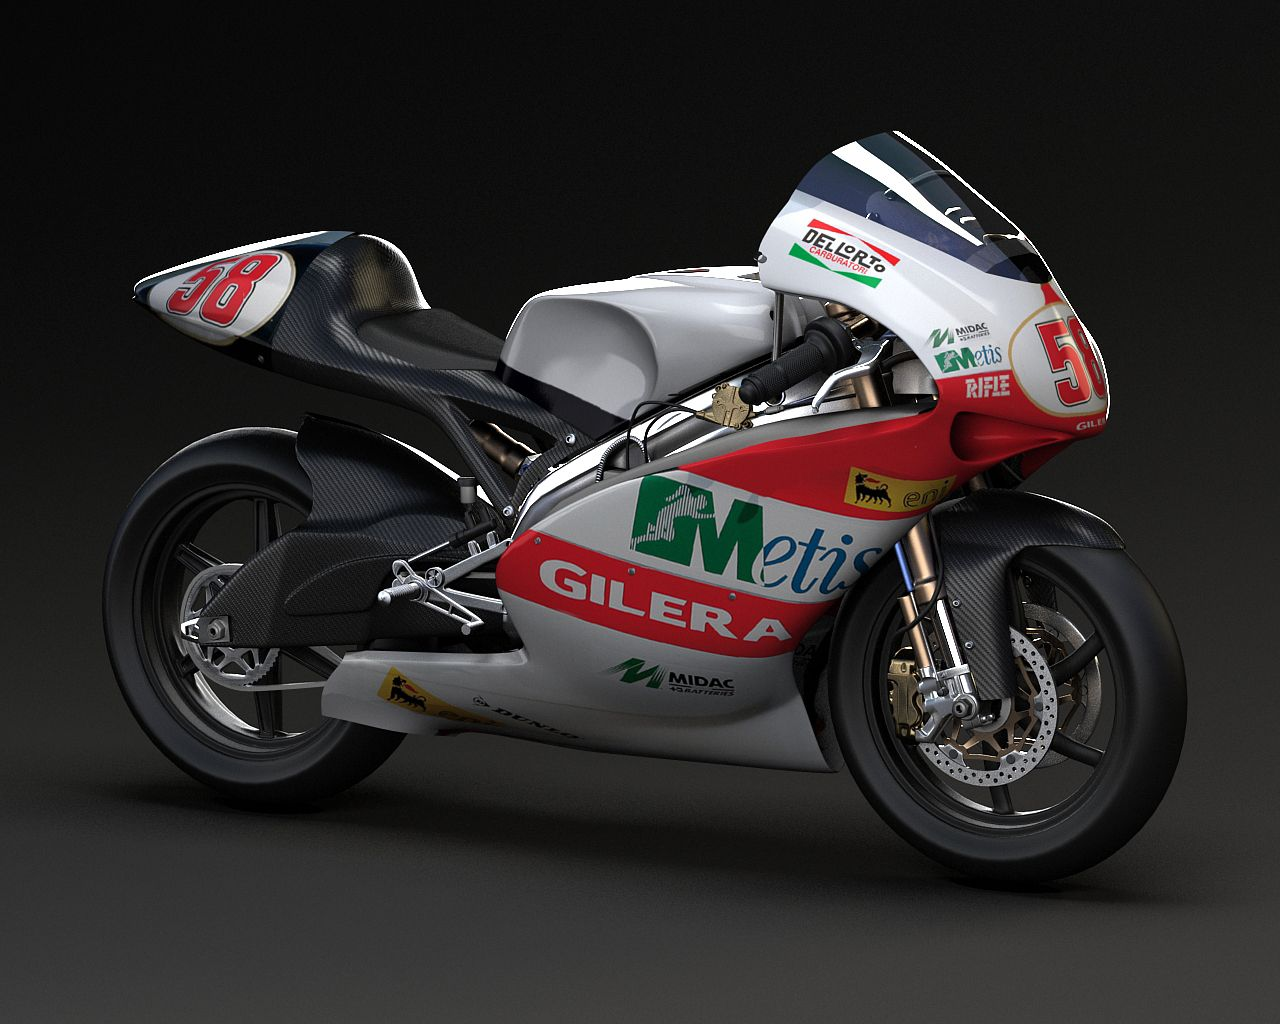 Gilera 250cc 2 stroke. Essentially a re-badged Aprilia RS250 (both companies are owned by the Piaggio group, along woth Moto Guzzi). Most famously raced by Marco Simoncelli (for more see boards: motogp- marco simoncelli tribute and motogp- moto2 and moto3 and motorcycle racing)